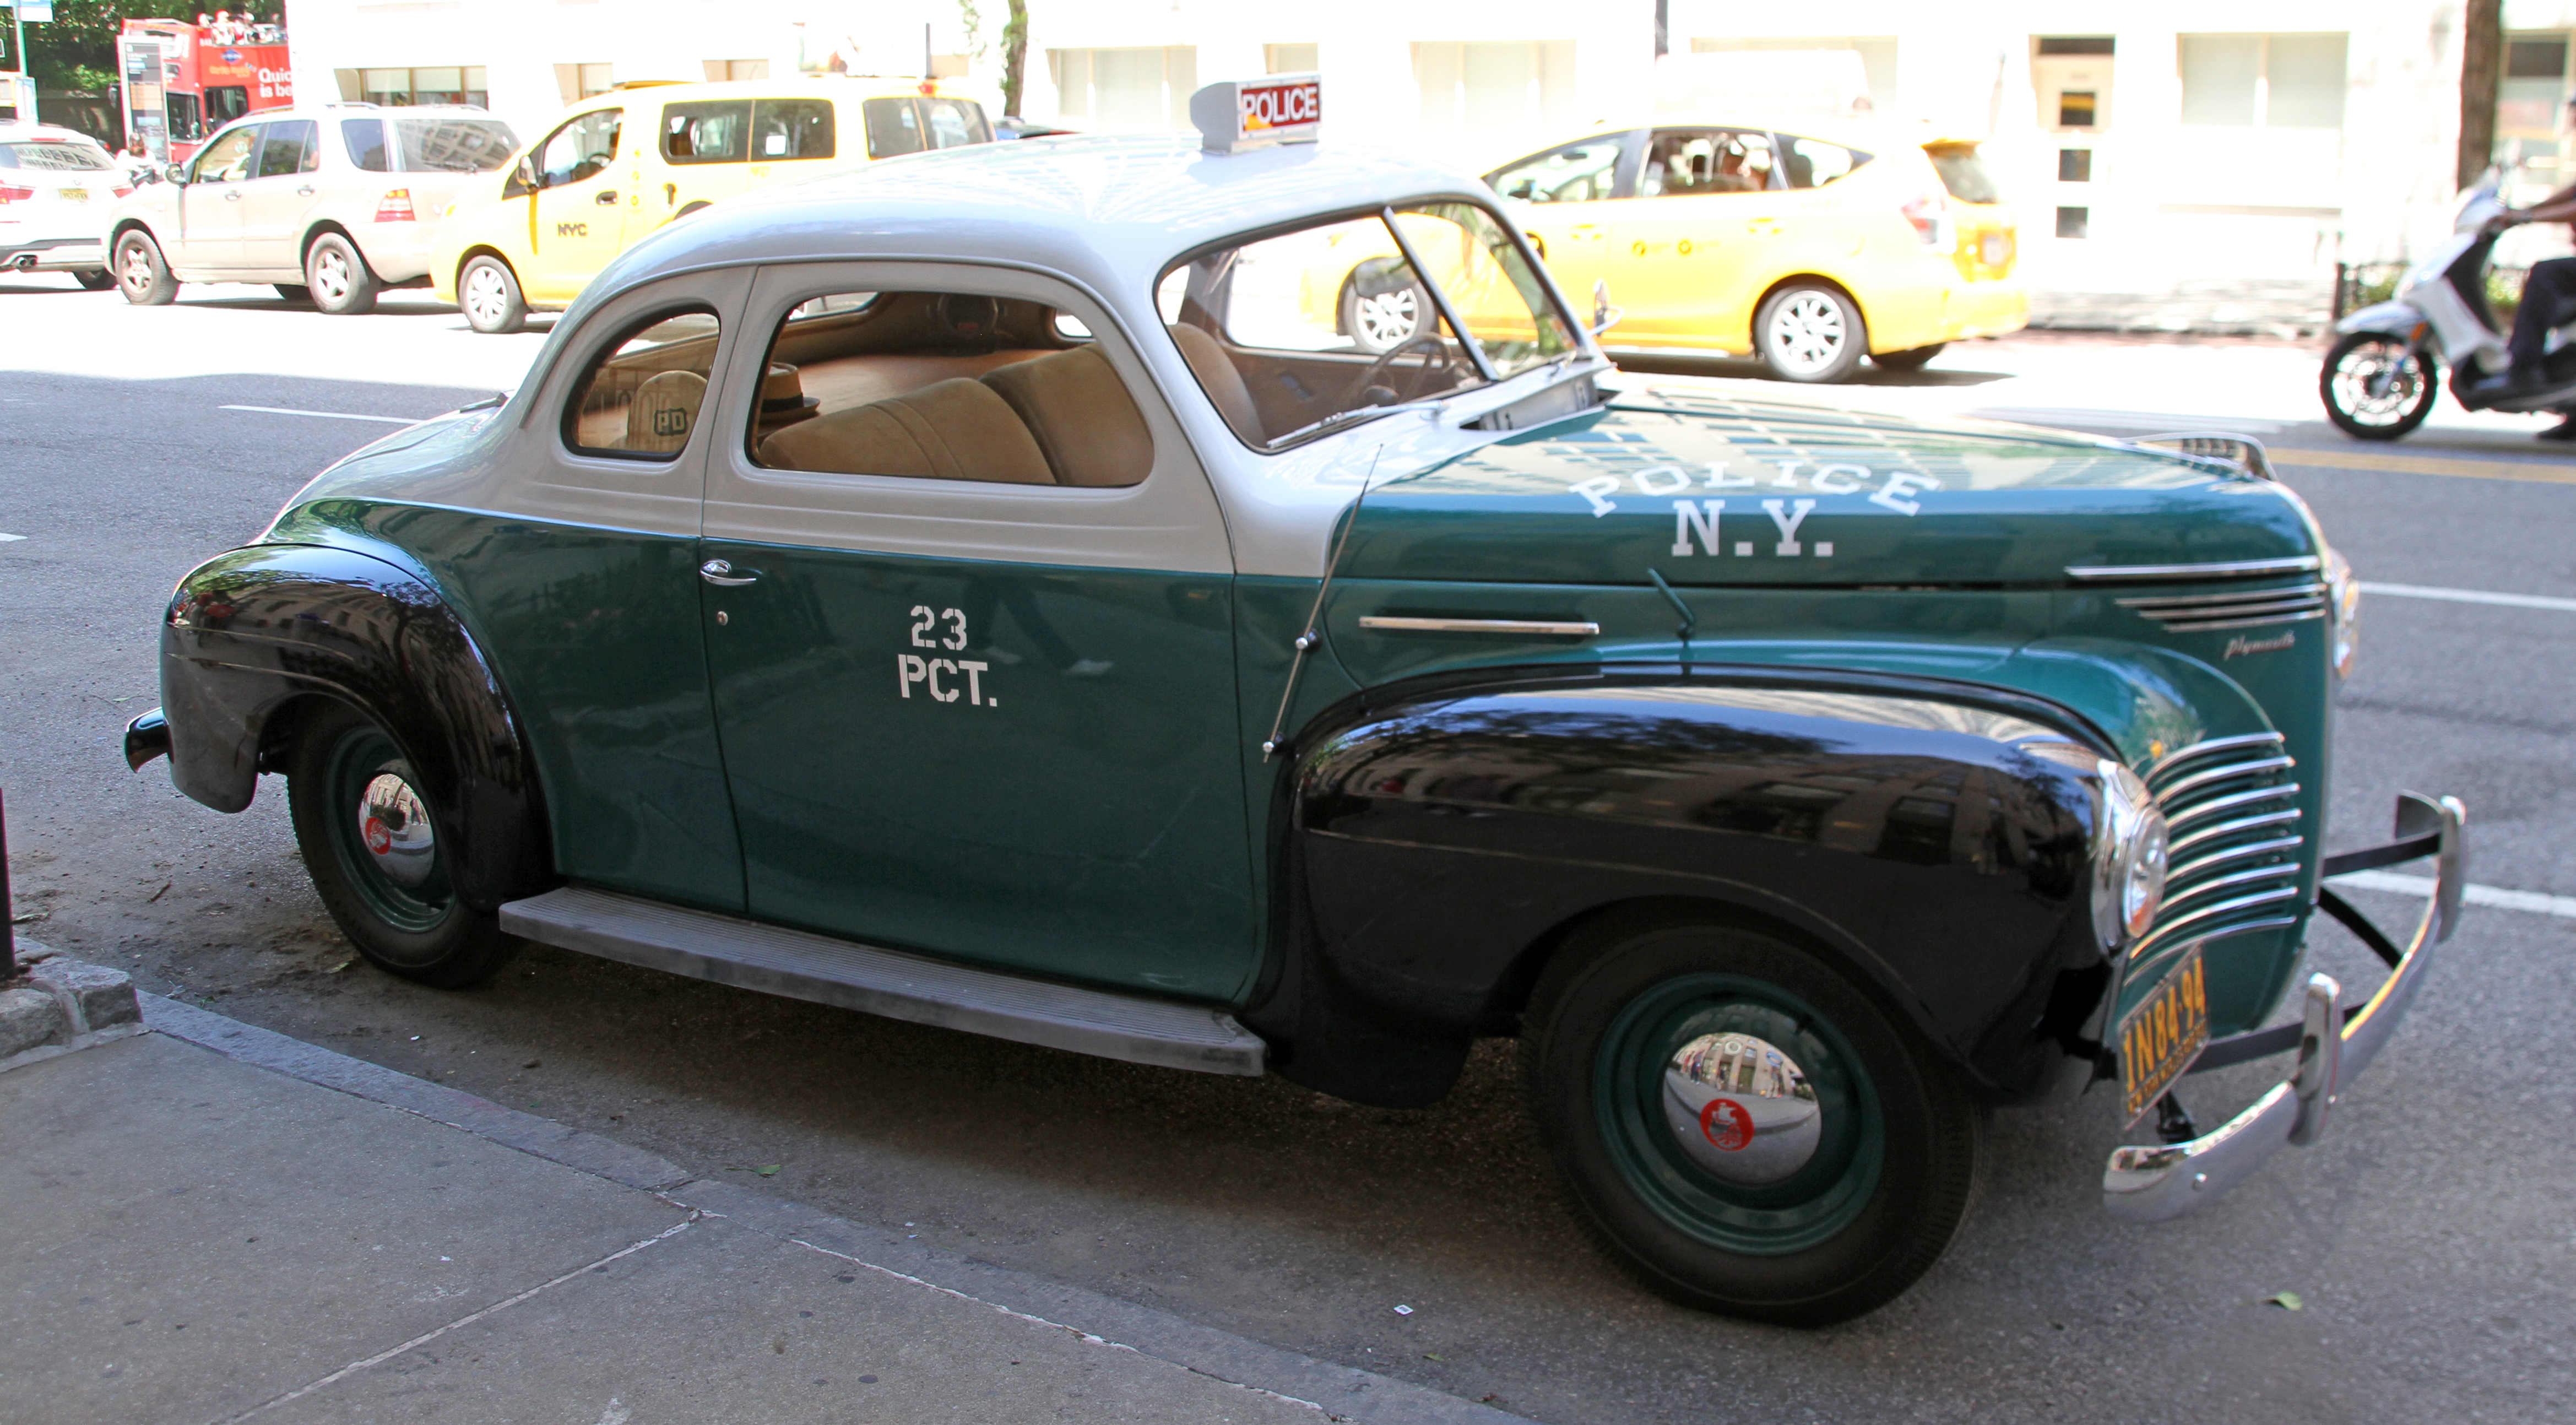 File:Old Plymouth NY Police Car (27920752785).jpg - Wikimedia Commons